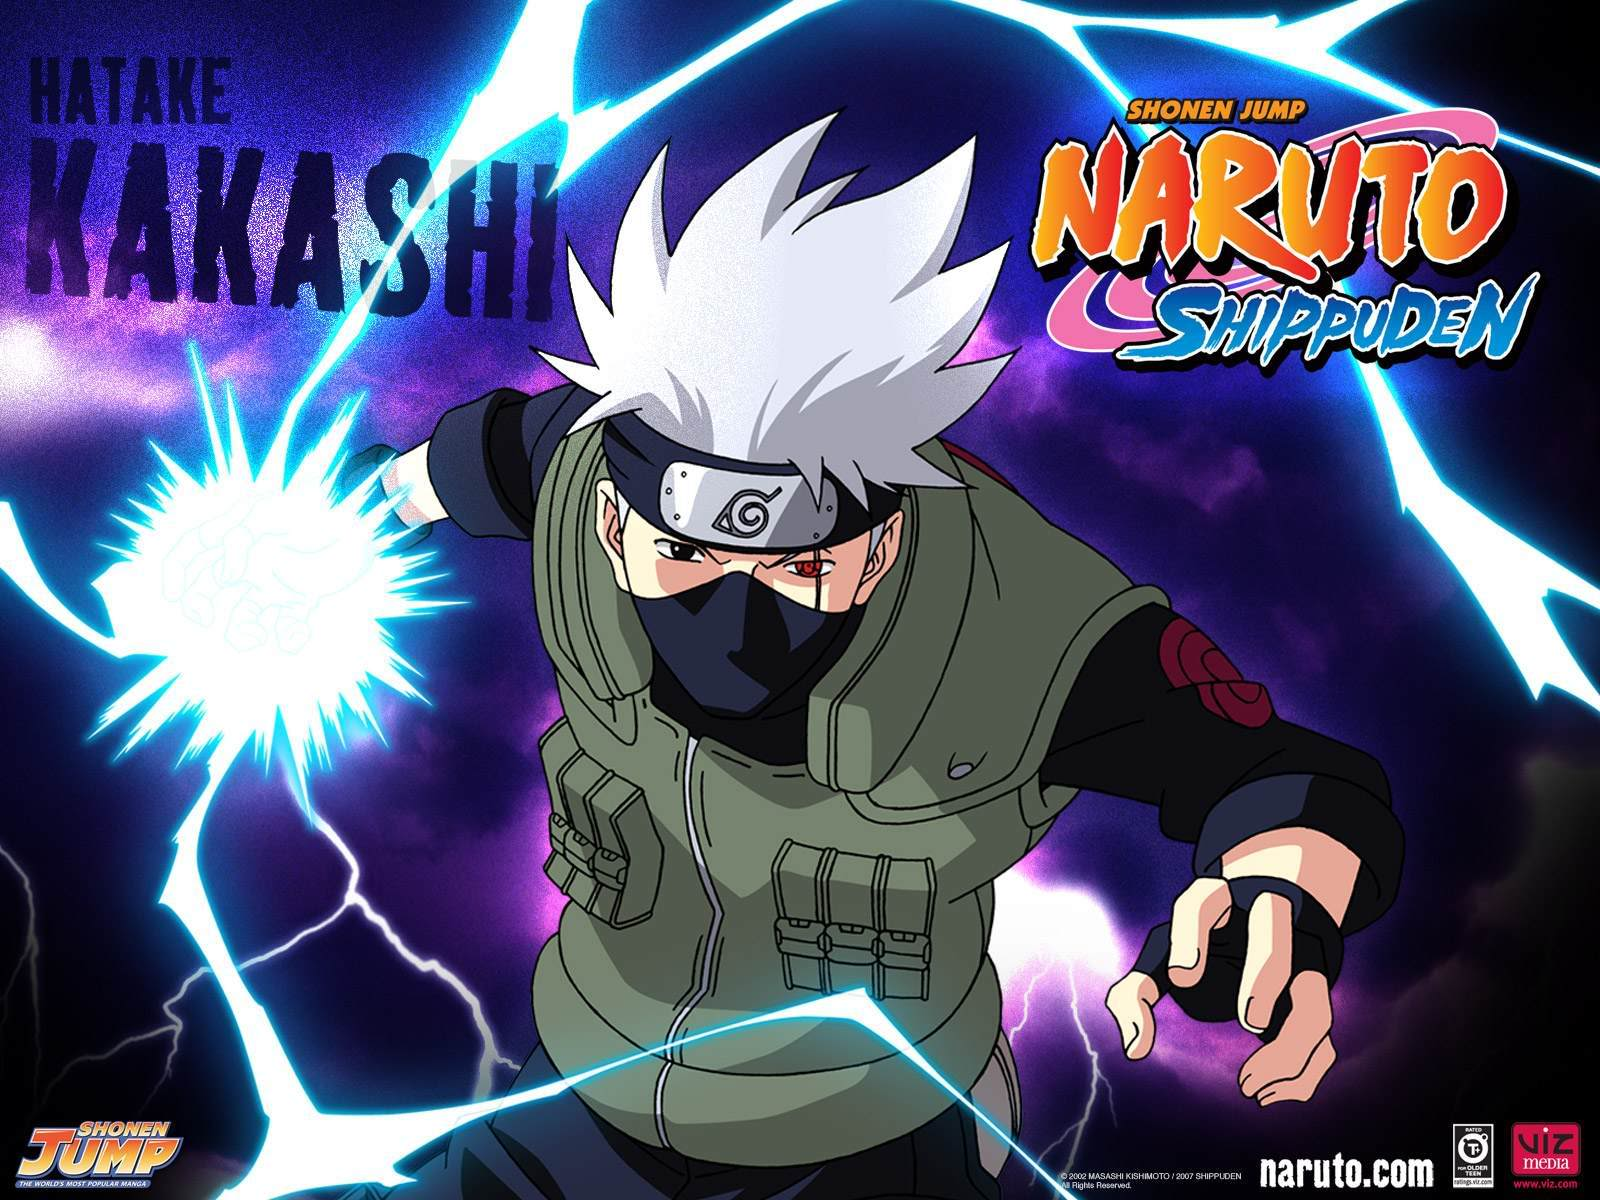 Free Naruto Shippuden Wallpapers - Wallpaper Cave